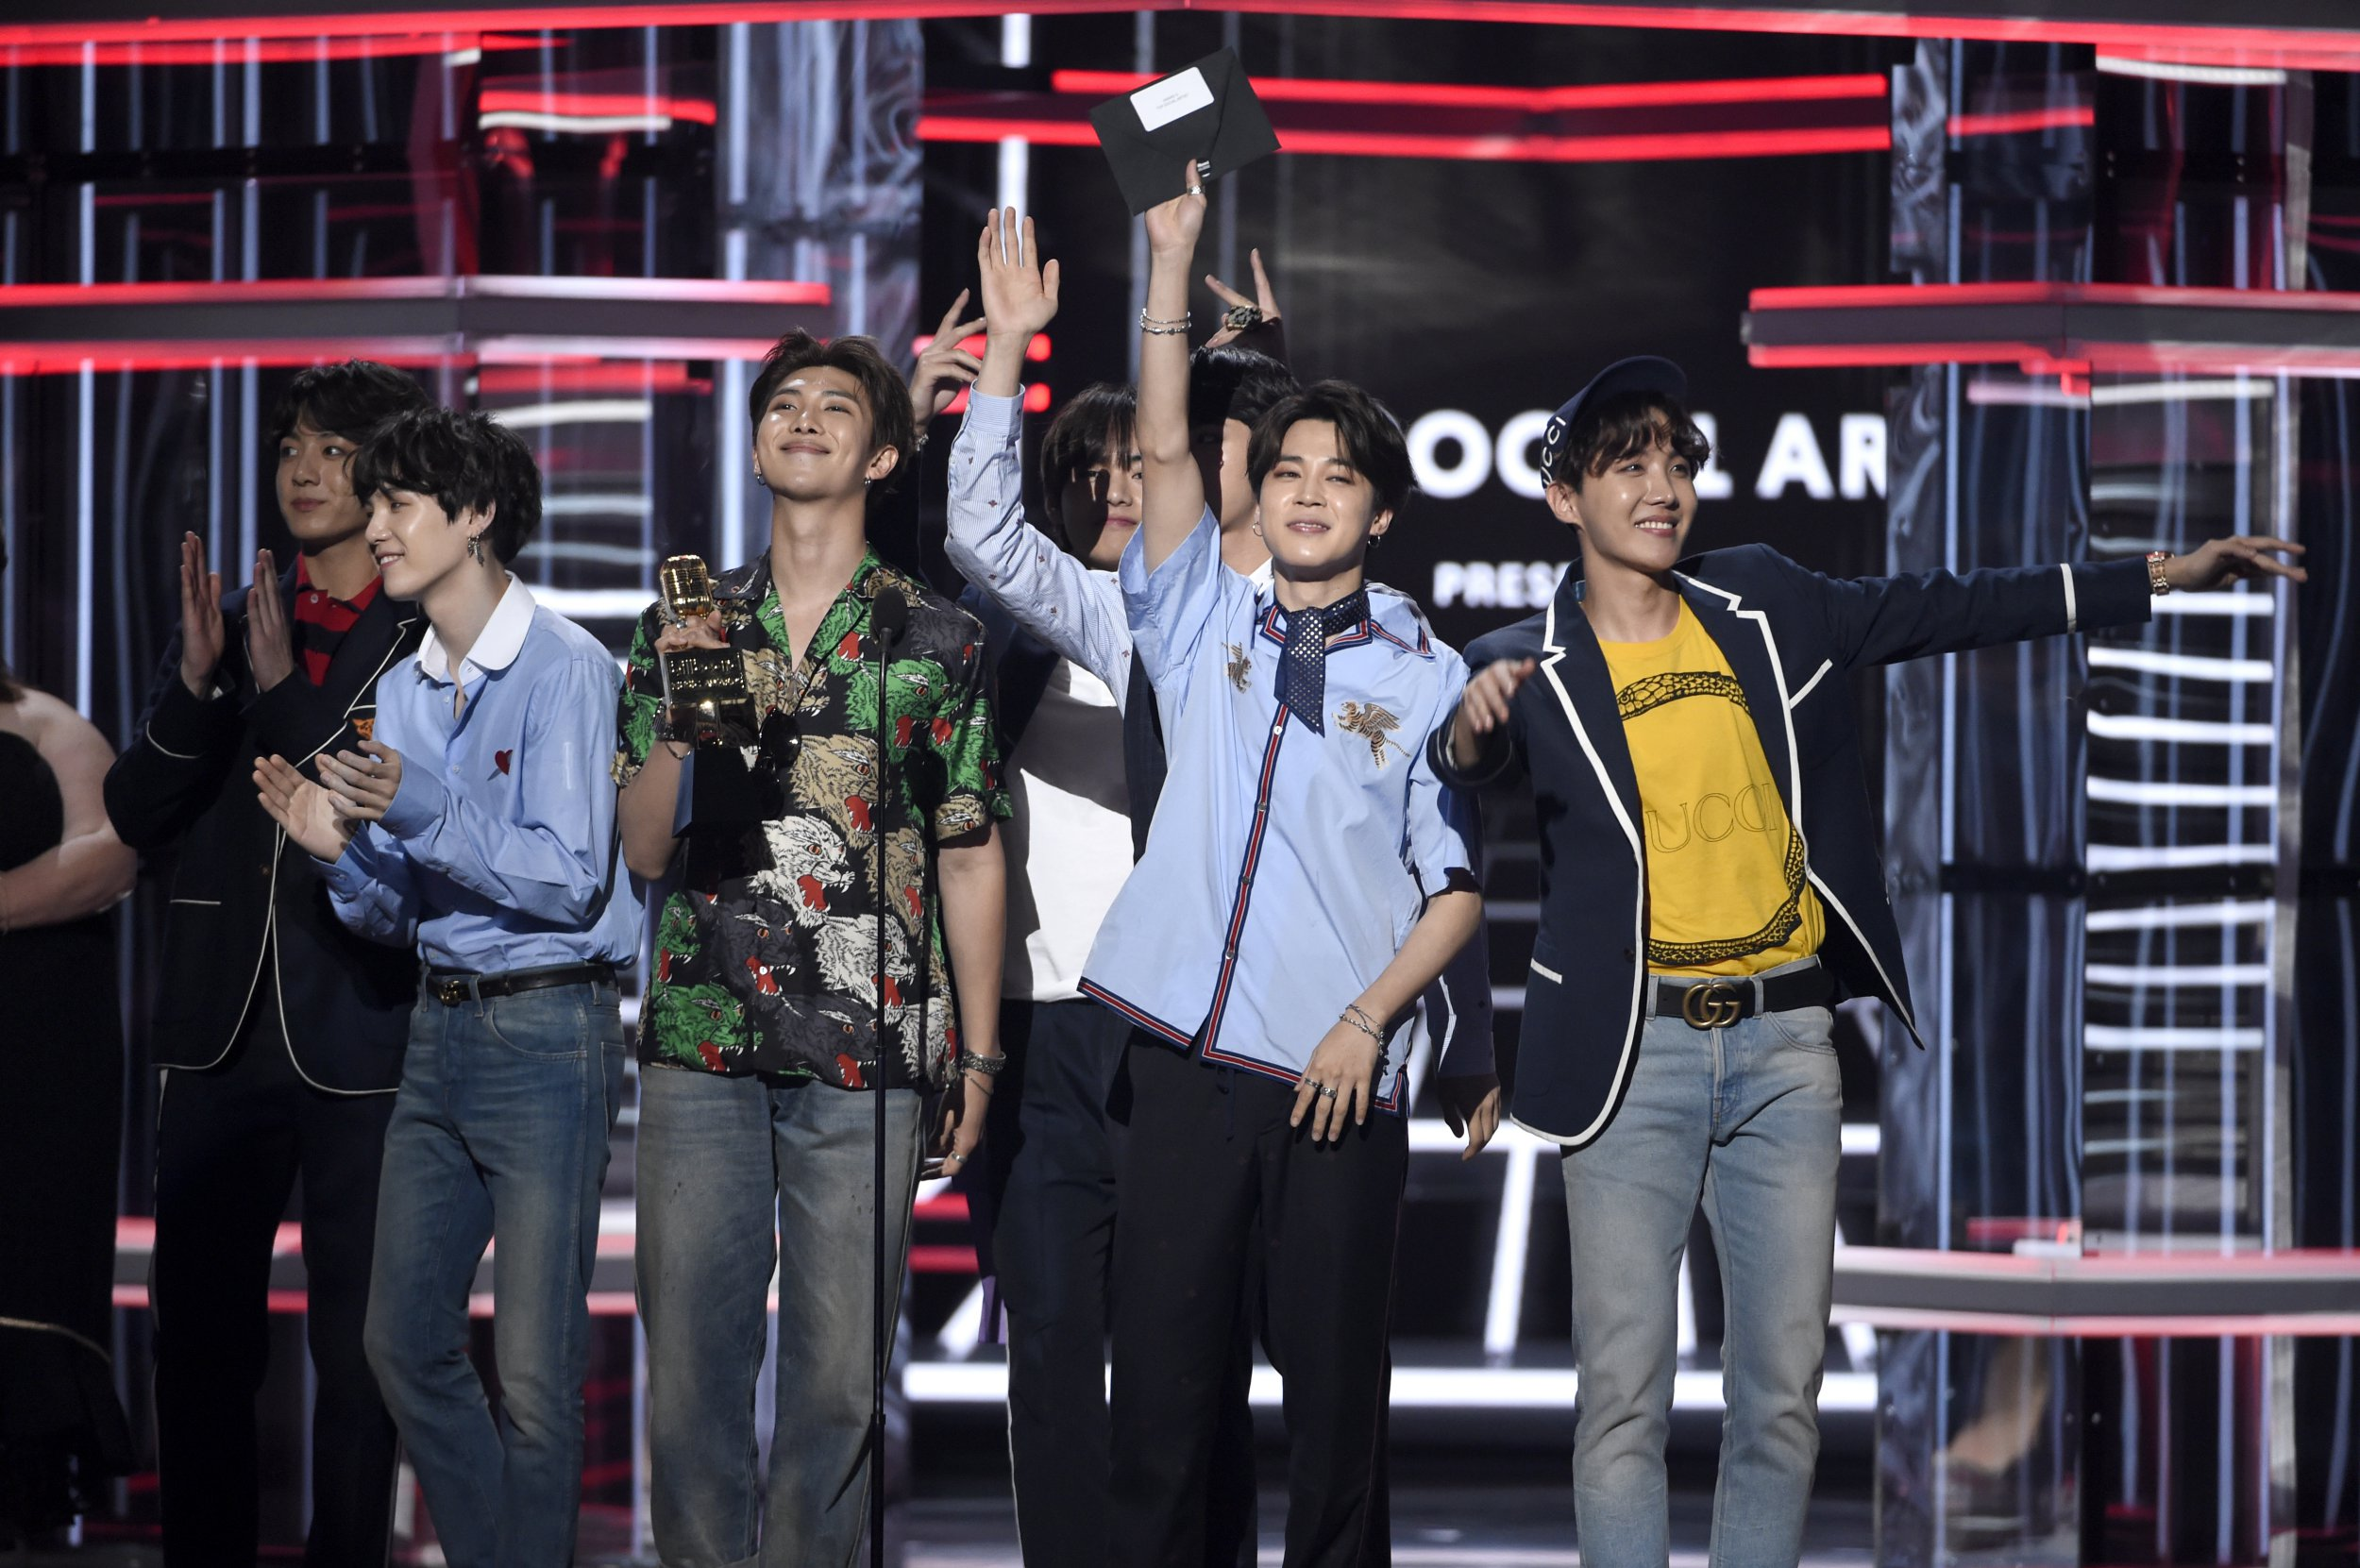 BTS accepts the award for top social artist at the Billboard Music Awards at the MGM Grand Garden Arena on Sunday, May 20, 2018, in Las Vegas. (Photo by Chris Pizzello/Invision/AP)